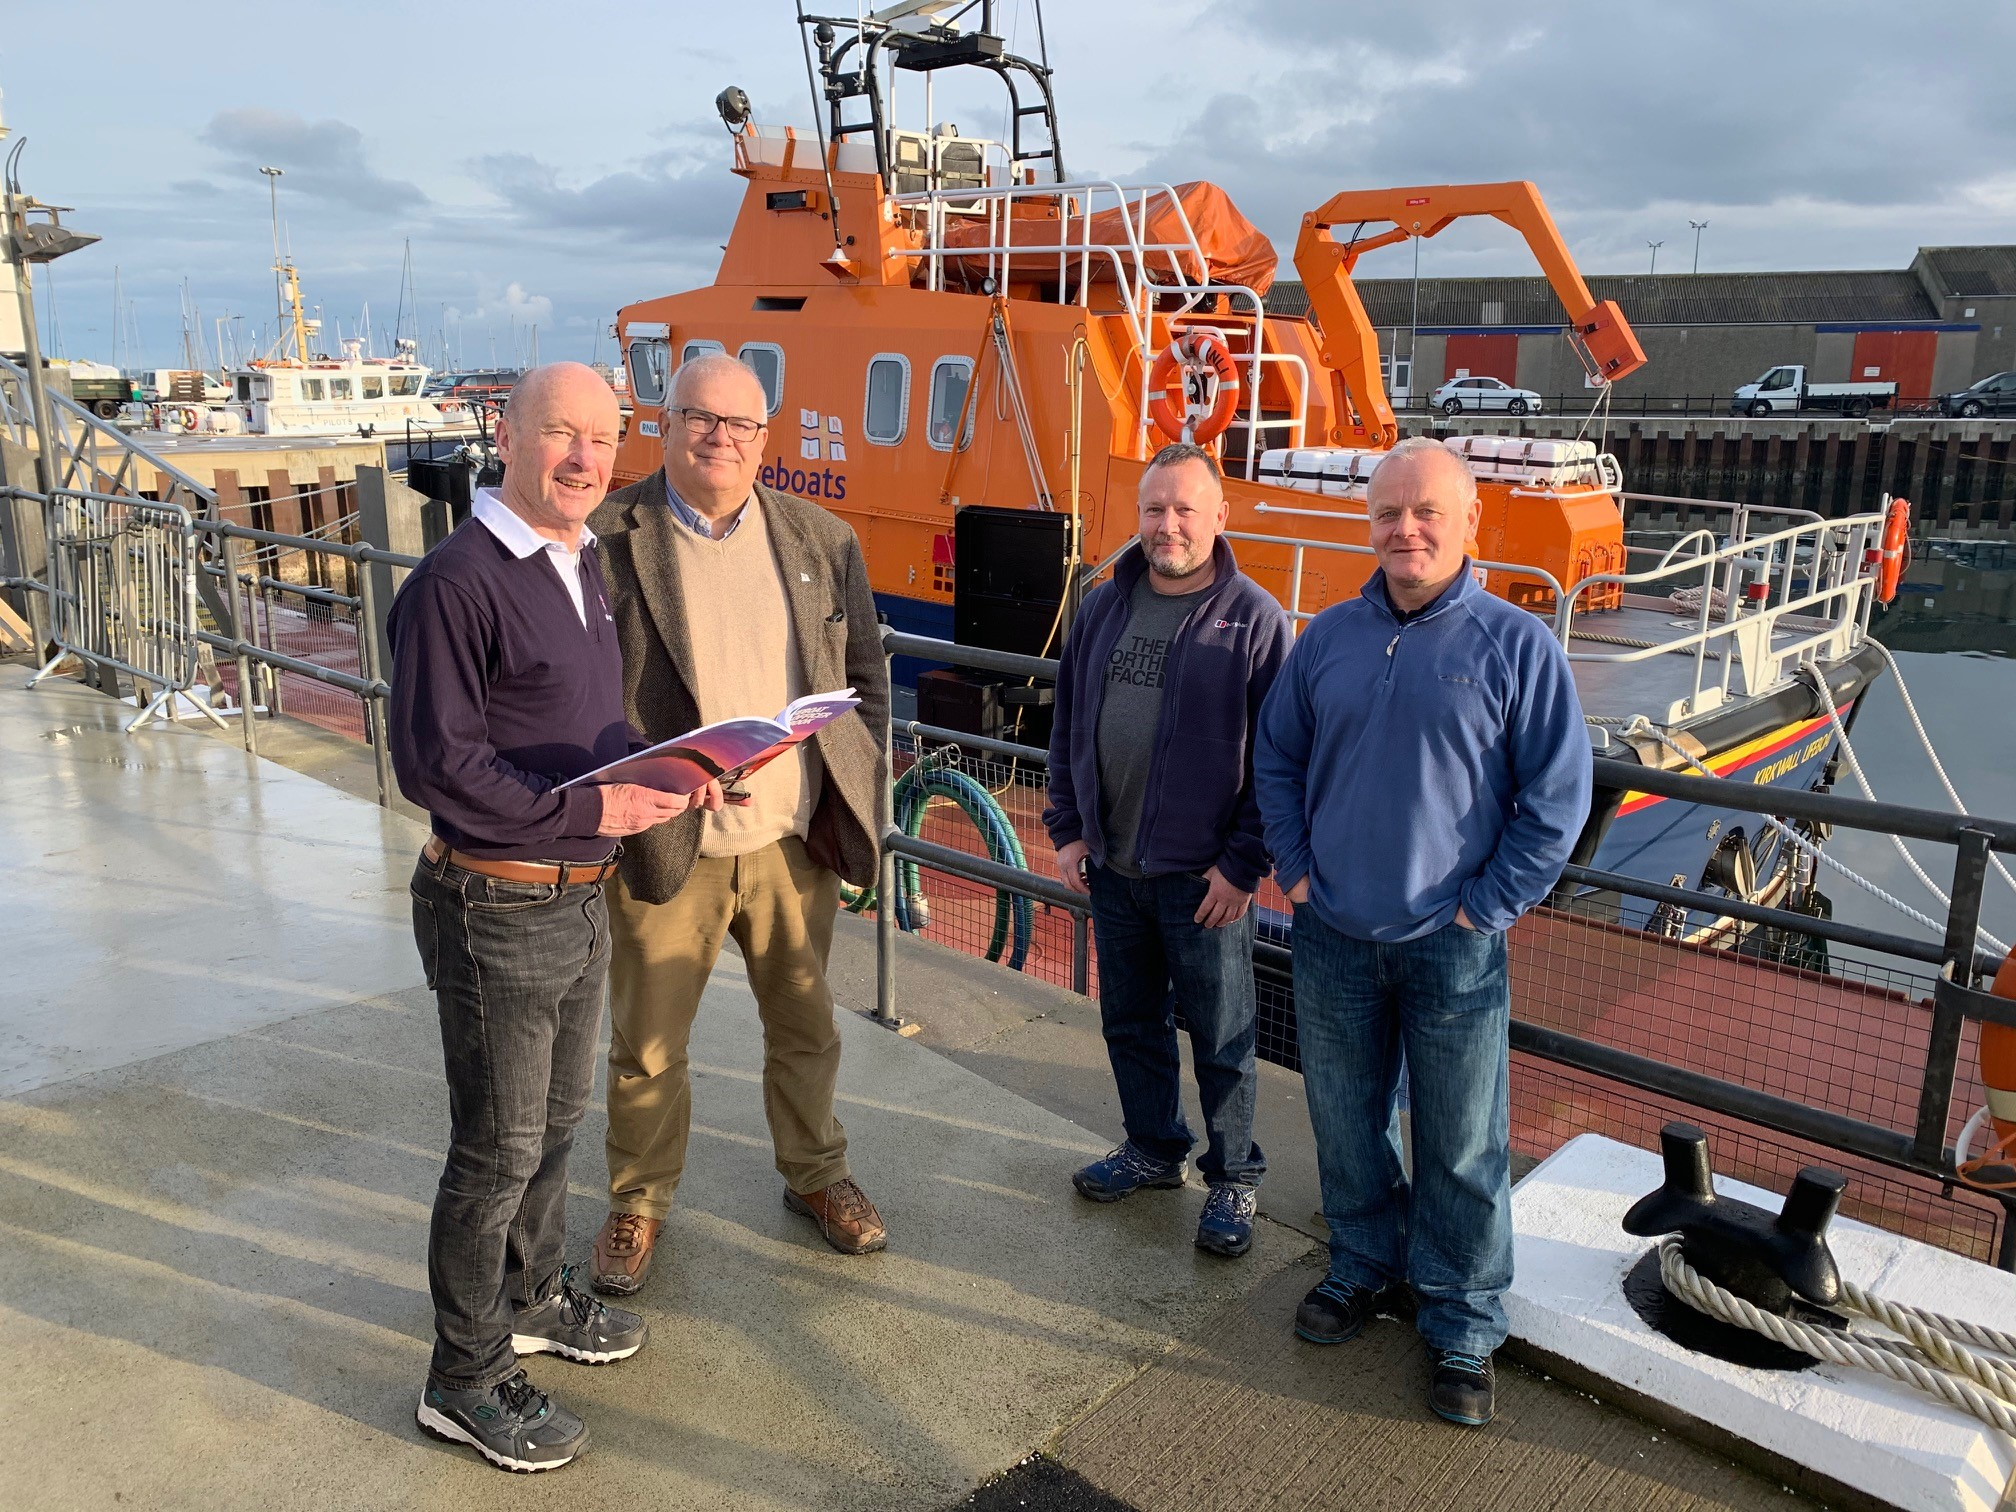 RNLI Media Trainer Richard Smith with Richard Clubley, Andy Fellows and Graham Campbell